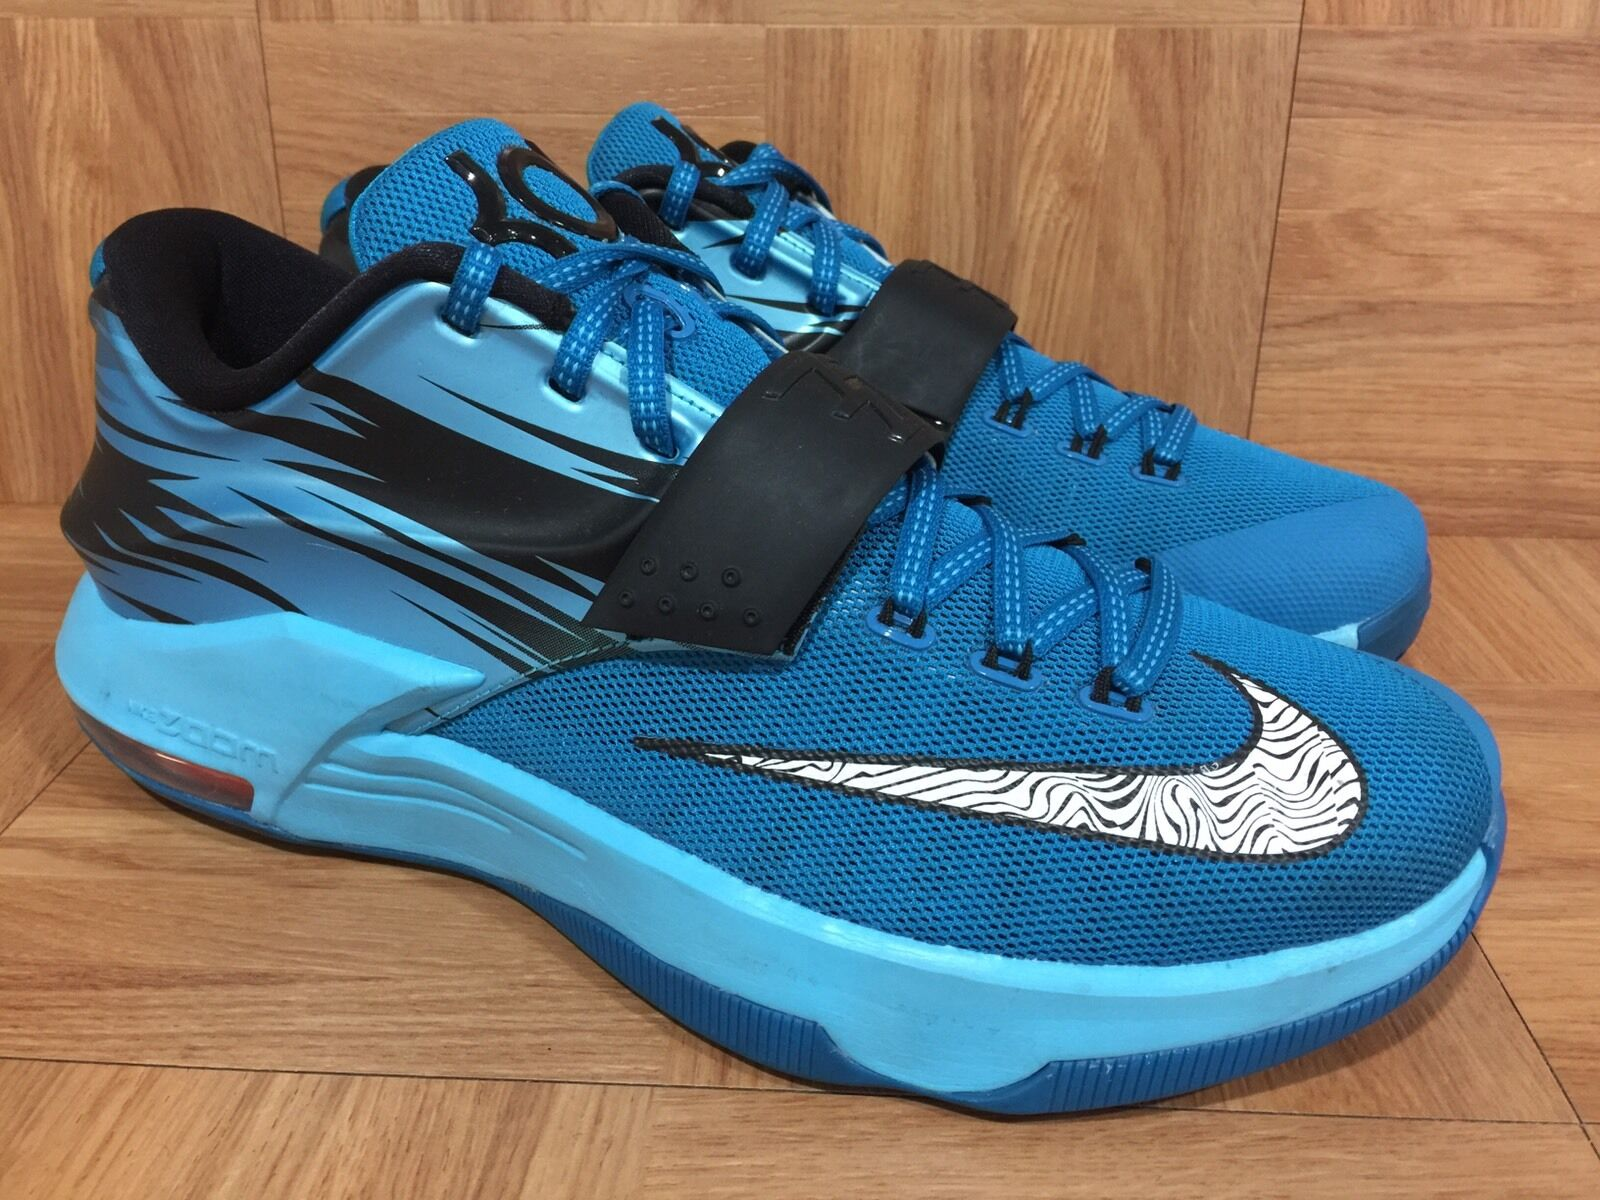 RARE  Nike KD VII Light Blue Lacquer Clearwater Total Orange Sz 10.5 653996-414